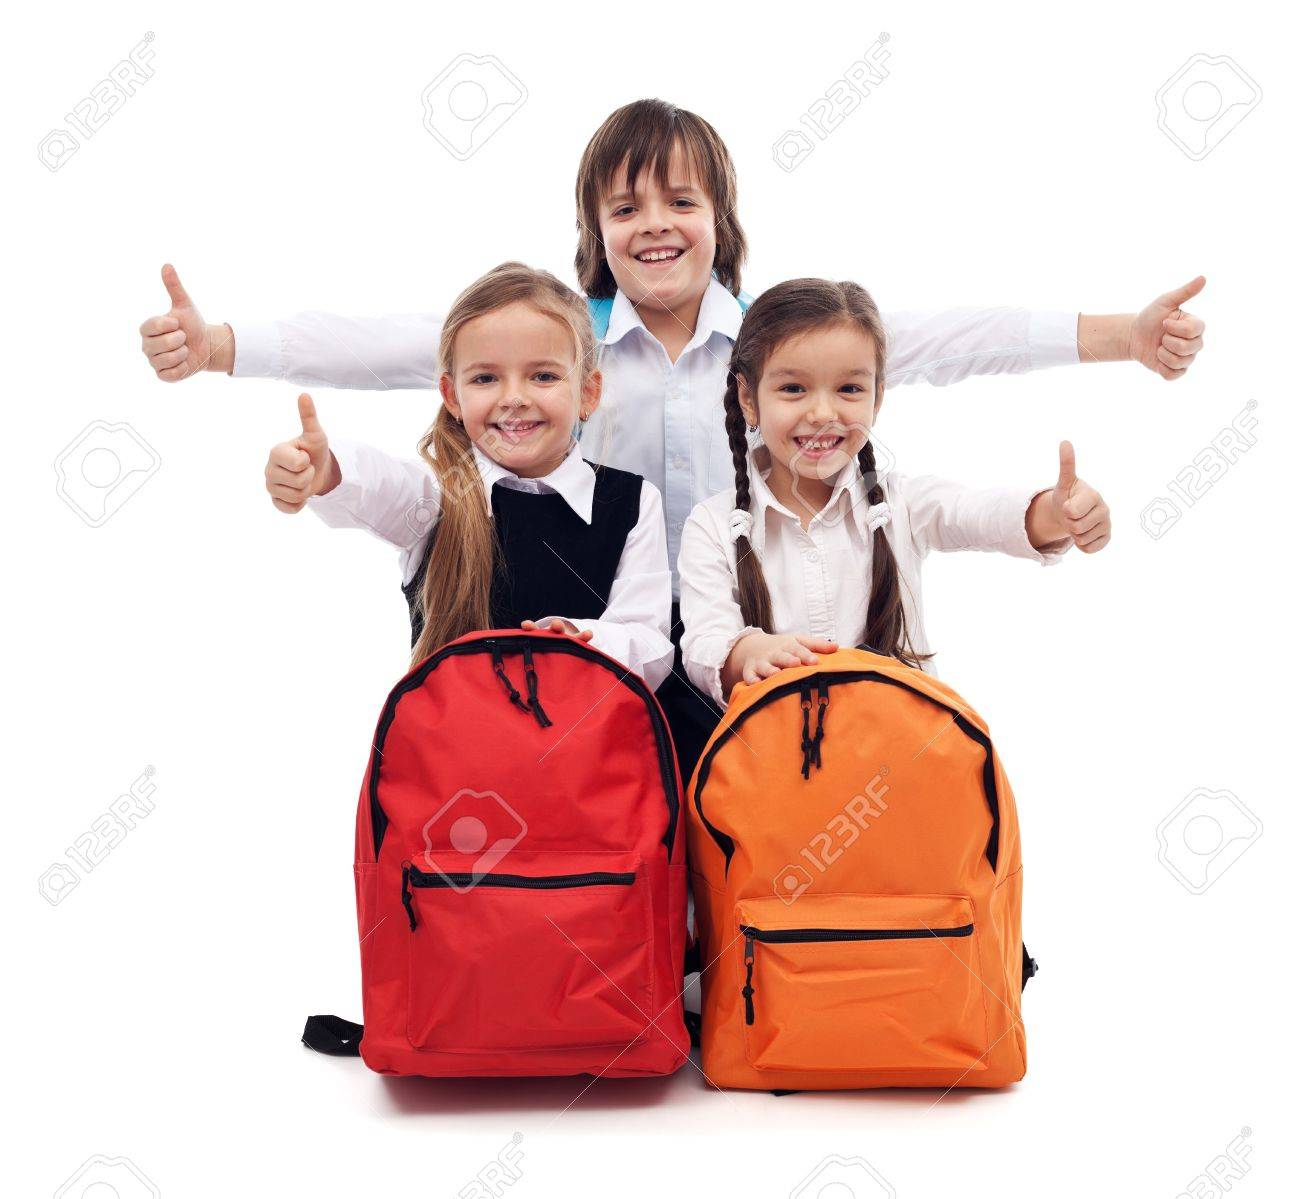 Back to school concept with happy kids giving thumbs up sign - isolated - 21450634